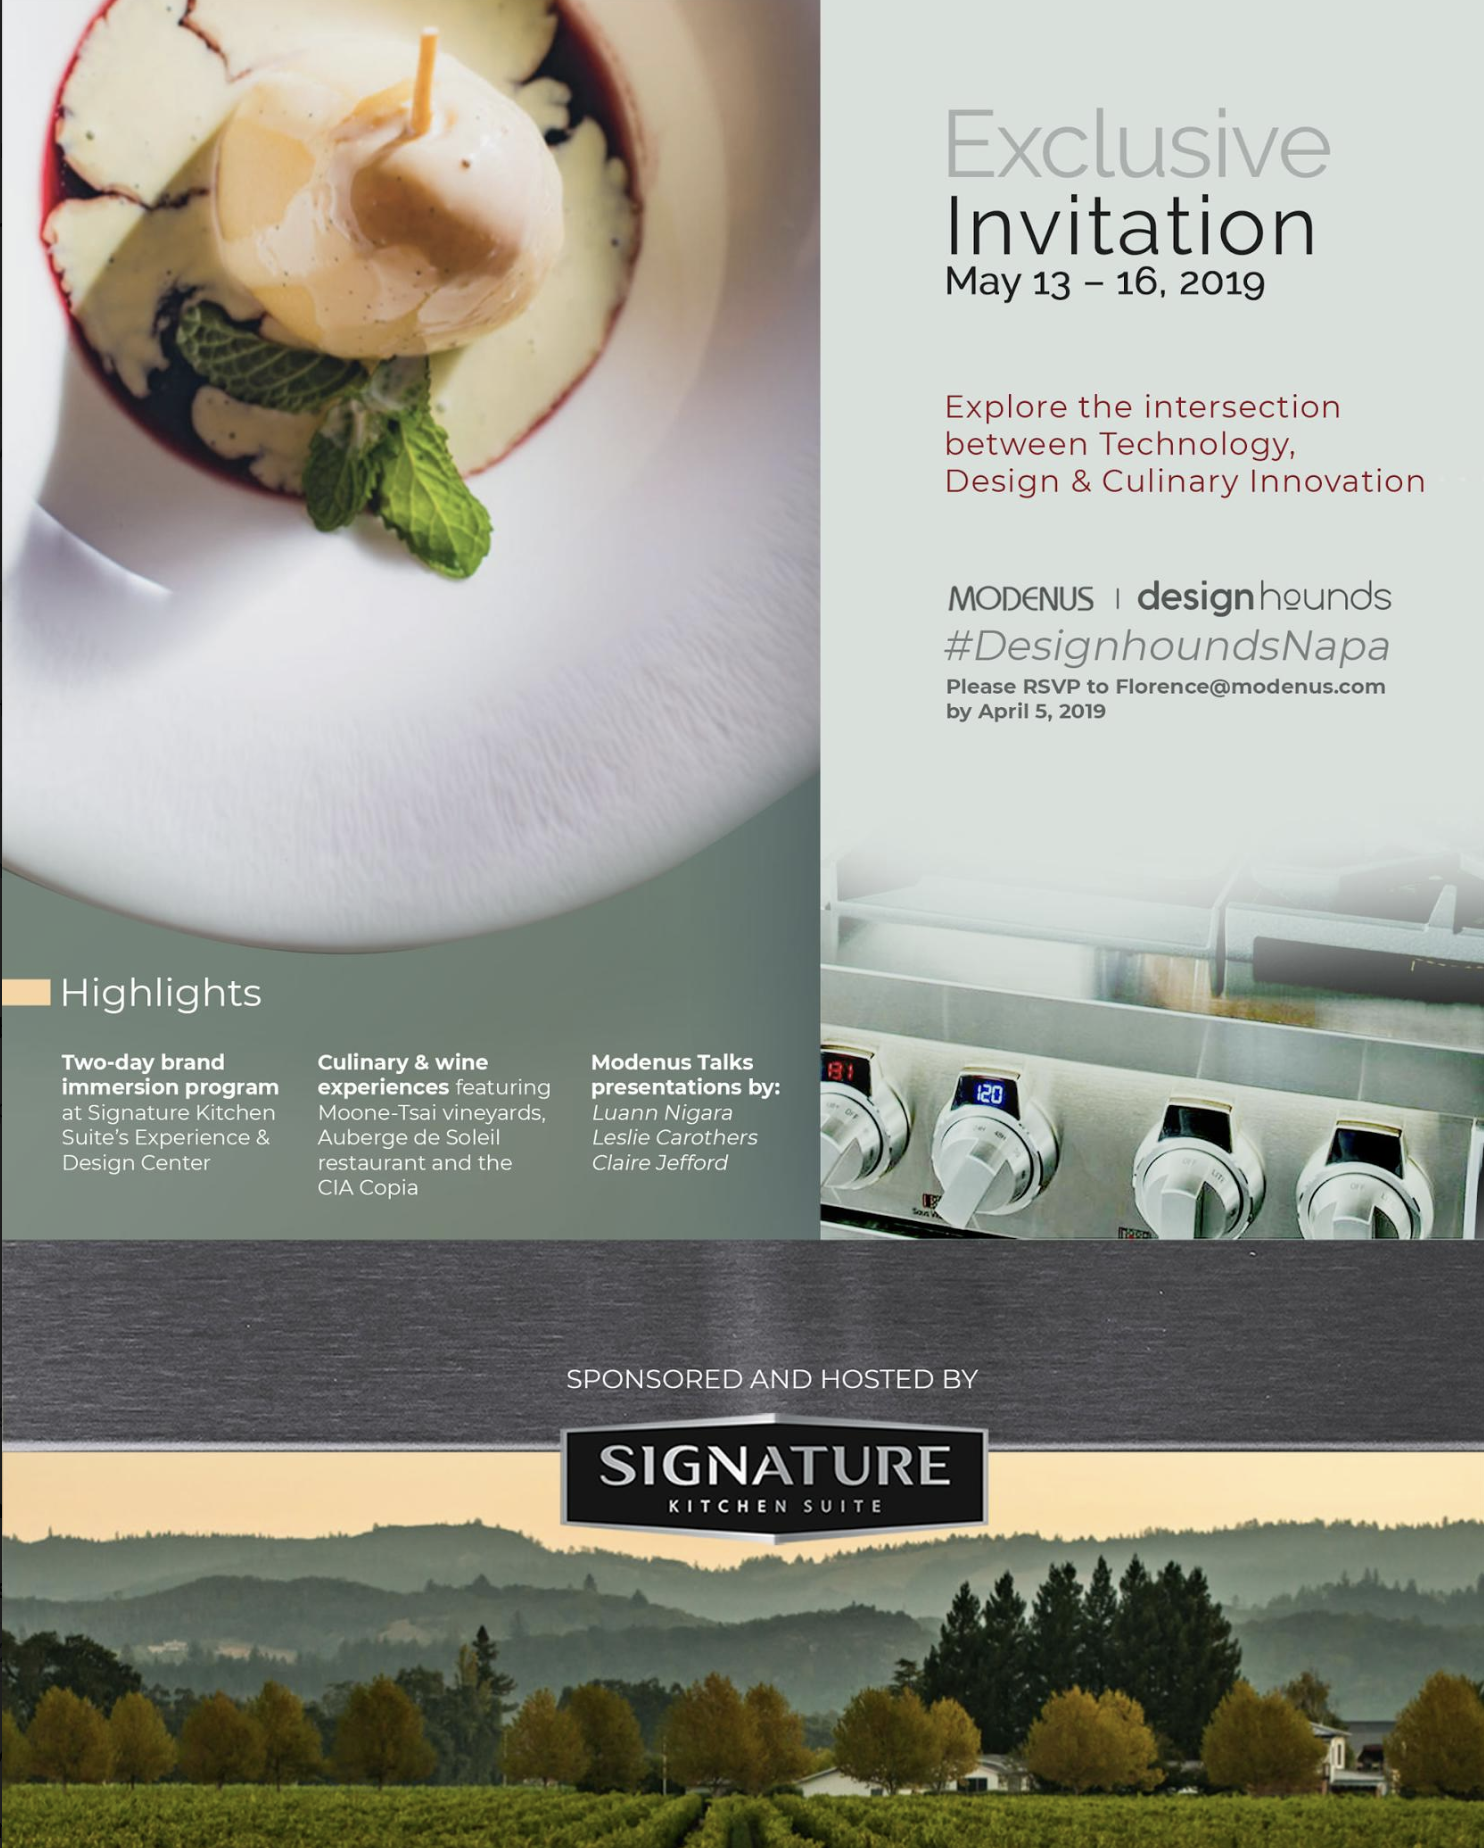 Signature Kitchen Appliances Experience and Design Center